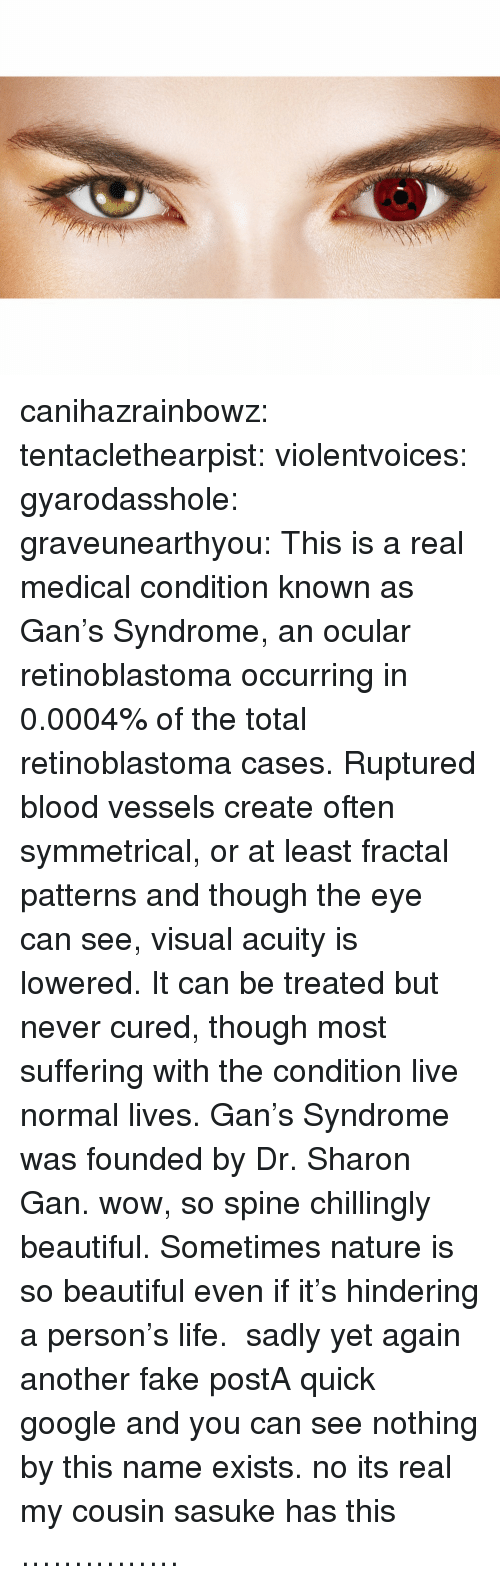 Symmetrical: canihazrainbowz:  tentaclethearpist:  violentvoices:  gyarodasshole:  graveunearthyou:  This is a real medical condition known as Gan's Syndrome, an ocular retinoblastoma occurring in 0.0004% of the total retinoblastoma cases. Ruptured blood vessels create often symmetrical, or at least fractal patterns and though the eye can see, visual acuity is lowered. It can be treated but never cured, though most suffering with the condition live normal lives. Gan's Syndrome was founded by Dr. Sharon Gan.  wow, so spine chillingly beautiful. Sometimes nature is so beautiful even if it's hindering a person's life.  sadly yet again another fake postA quick google and you can see nothing by this name exists.  no its real my cousin sasuke has this  ……………